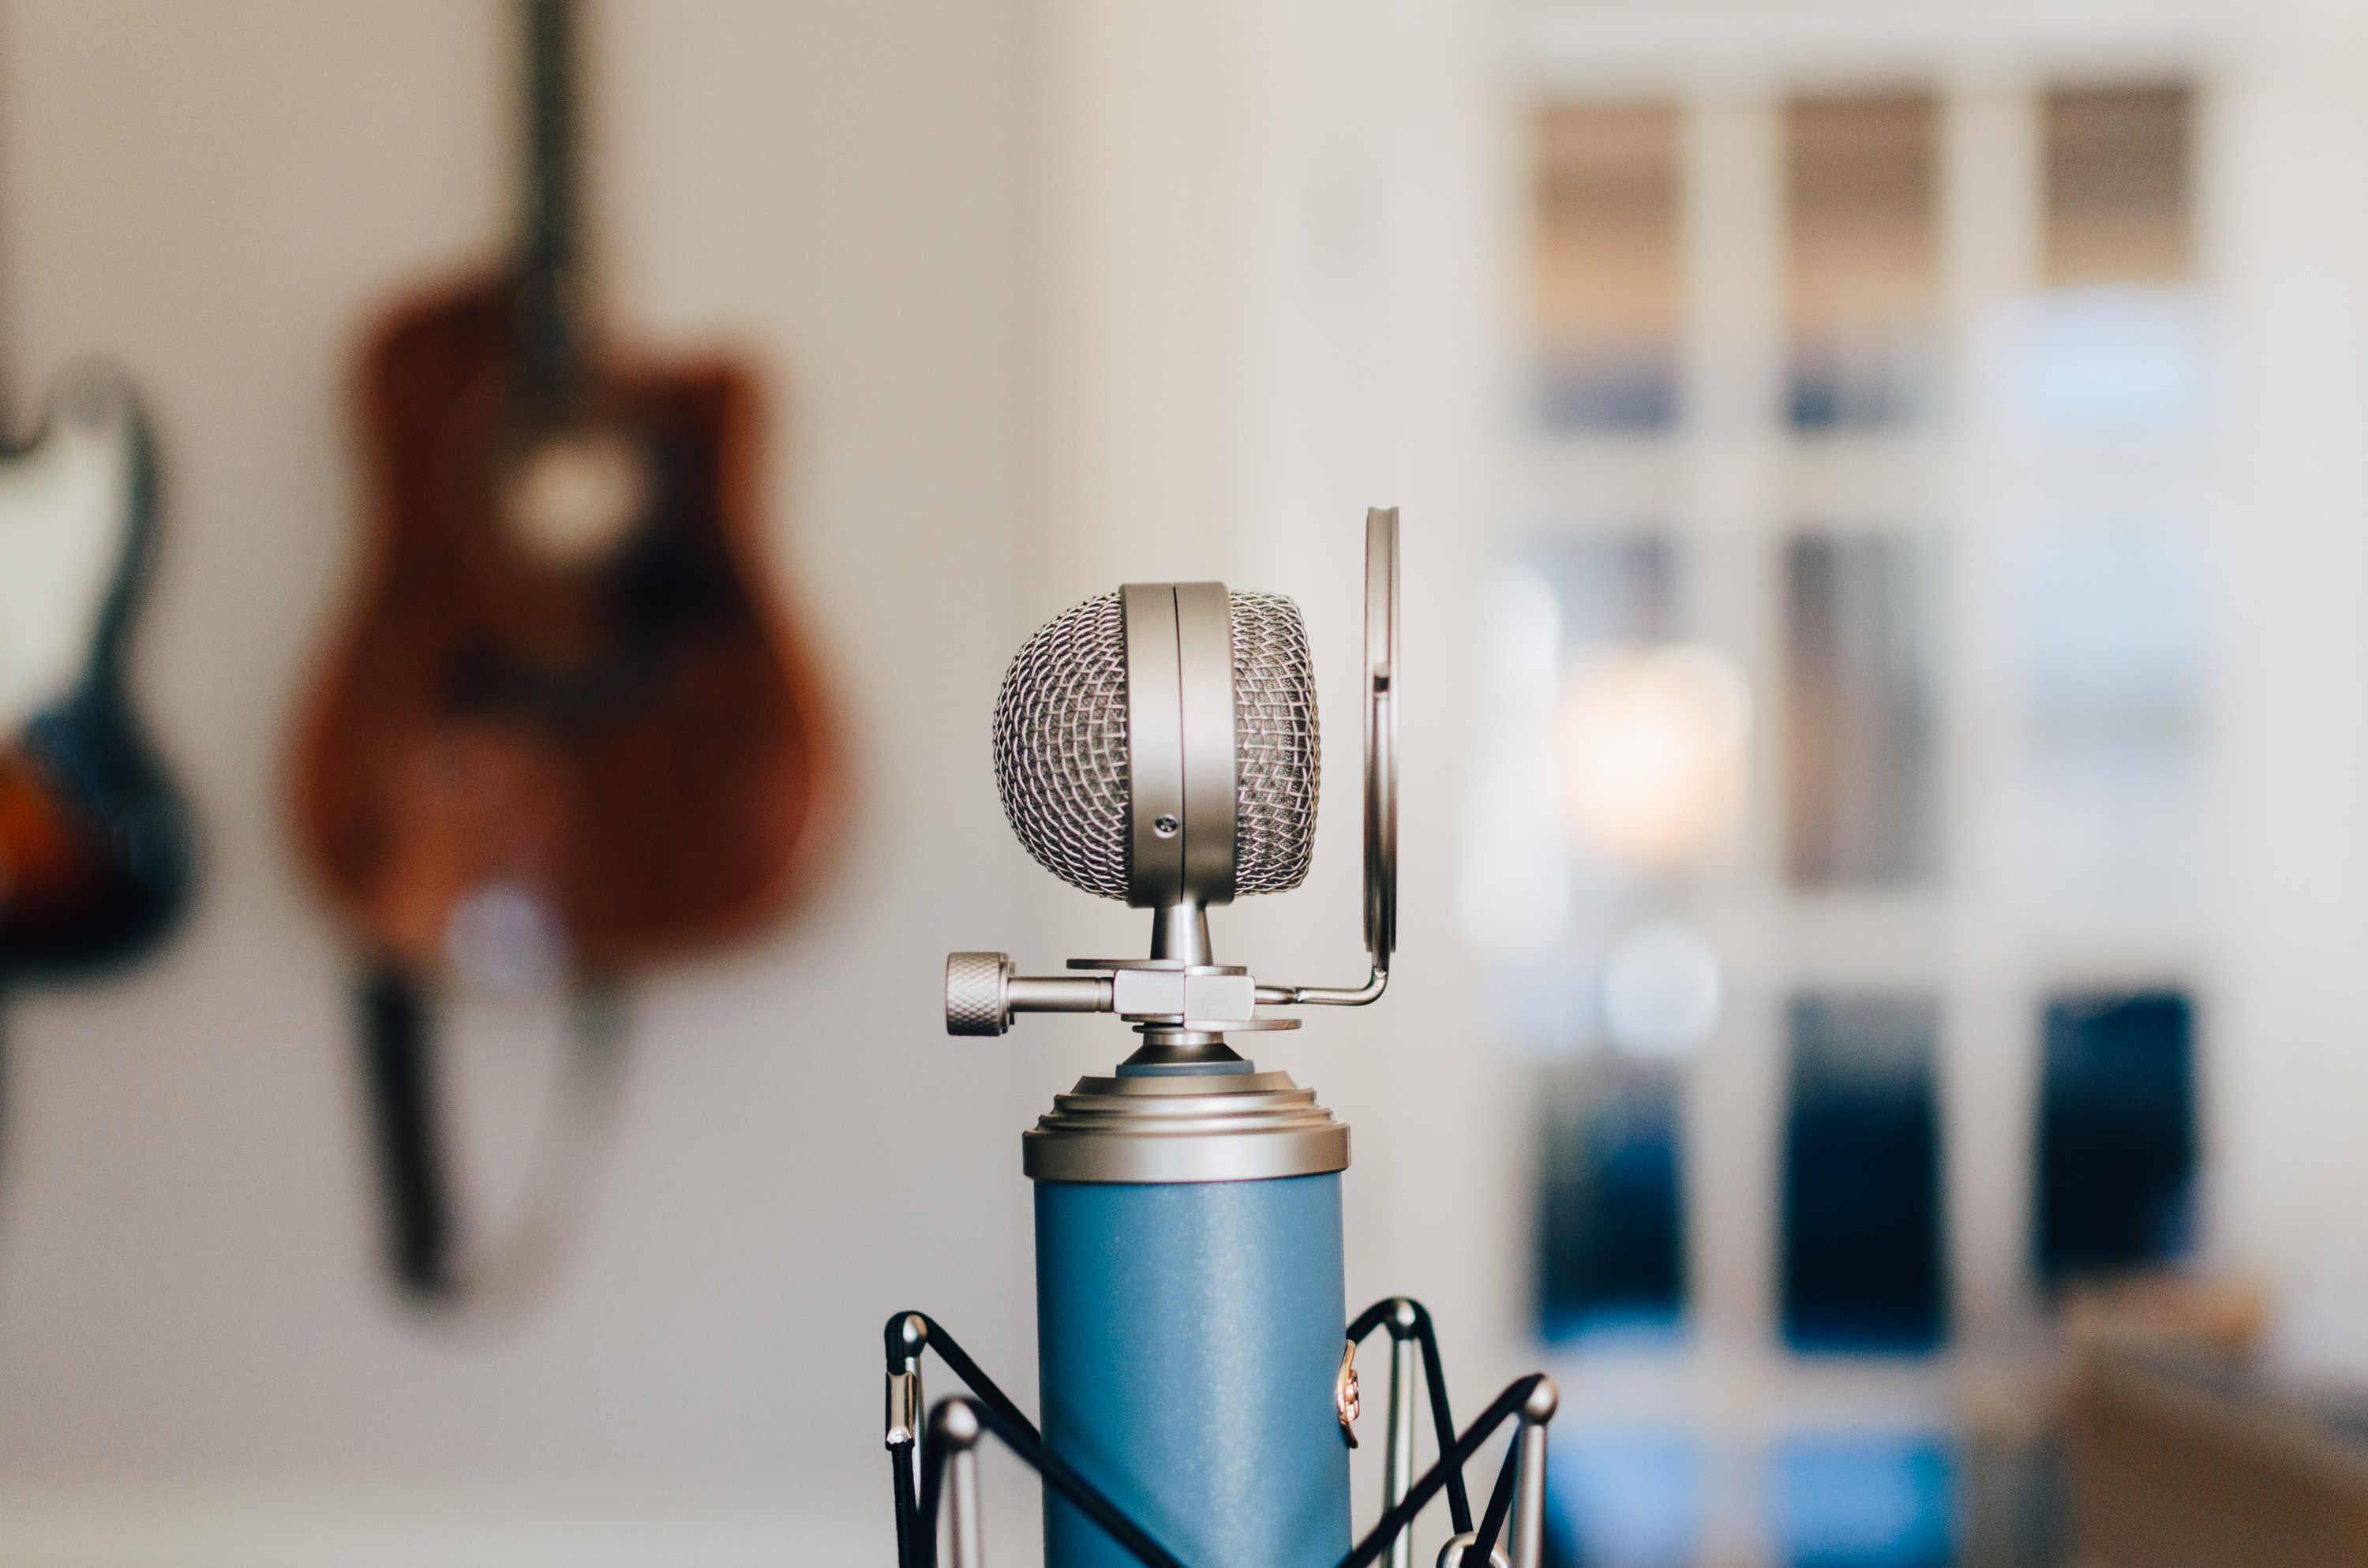 A small bluebird microphone on a stand with a pop filter in a white, bright room with hanging guitars